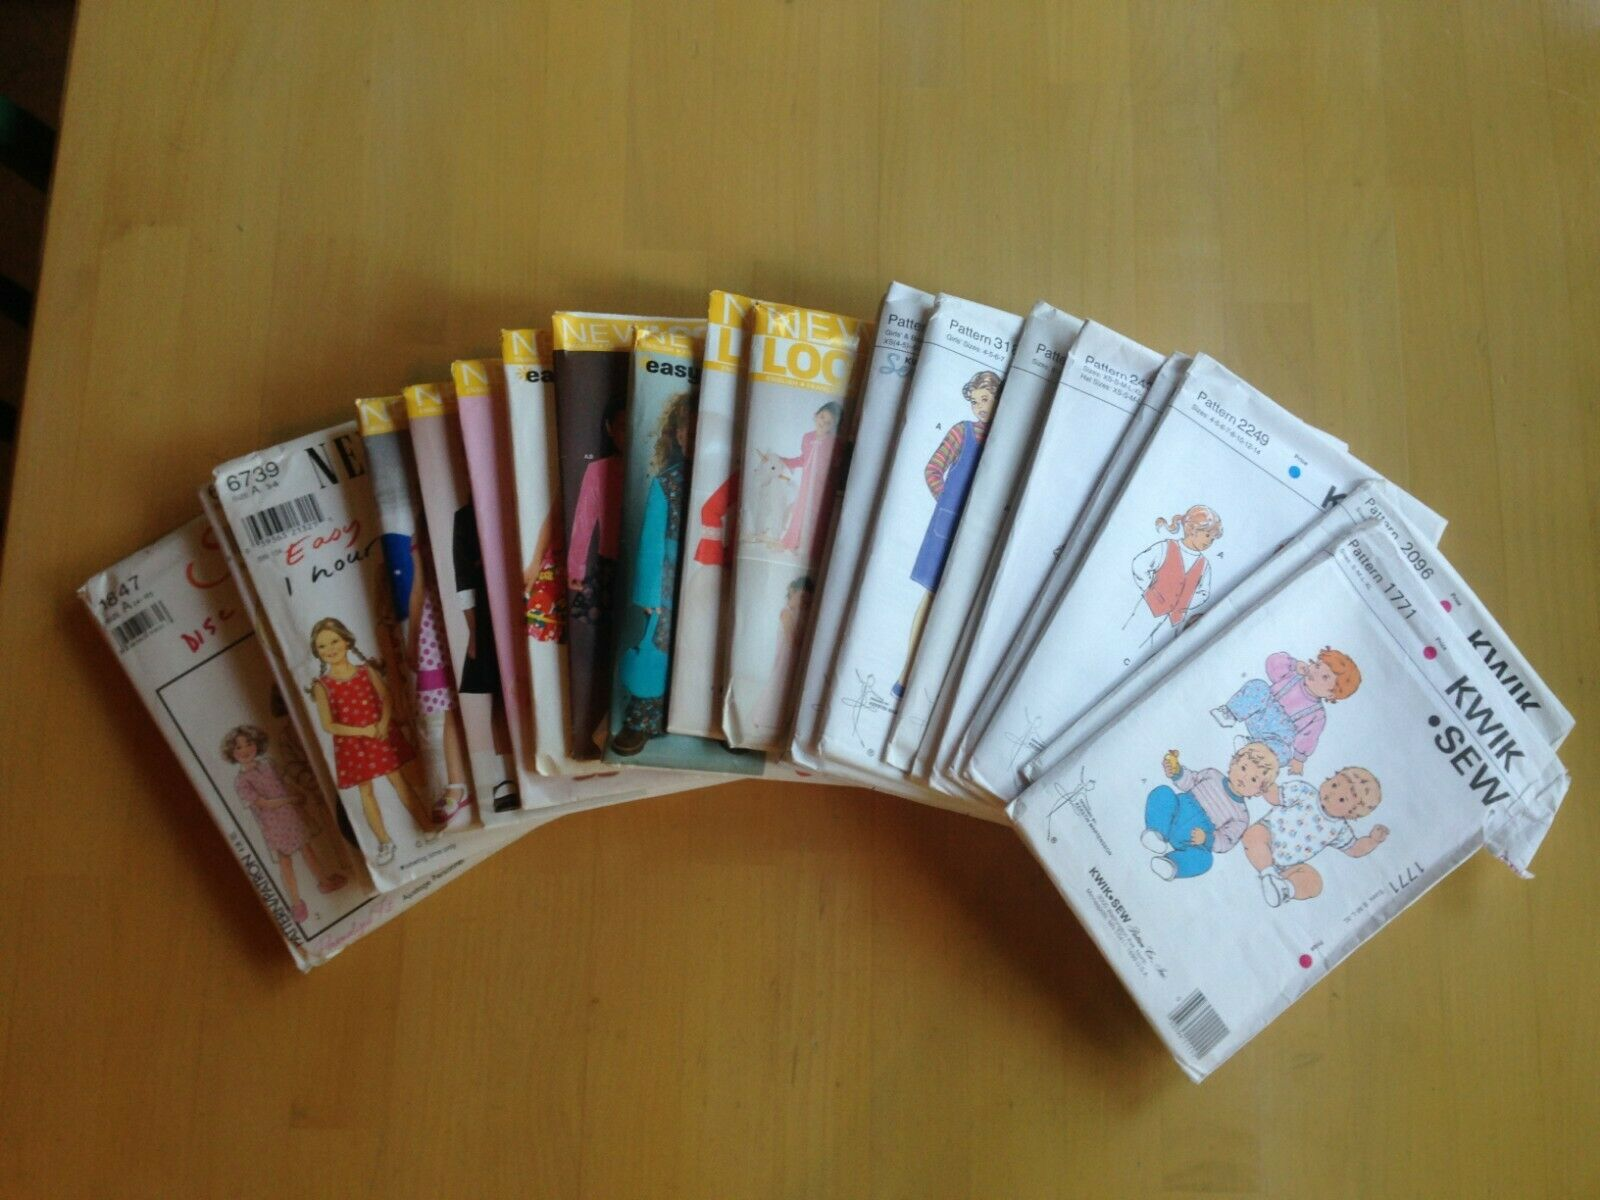 Children s Sewing Pattern, Kwik Sew New Look Style, Uncut, Choose Your Style - $3.95